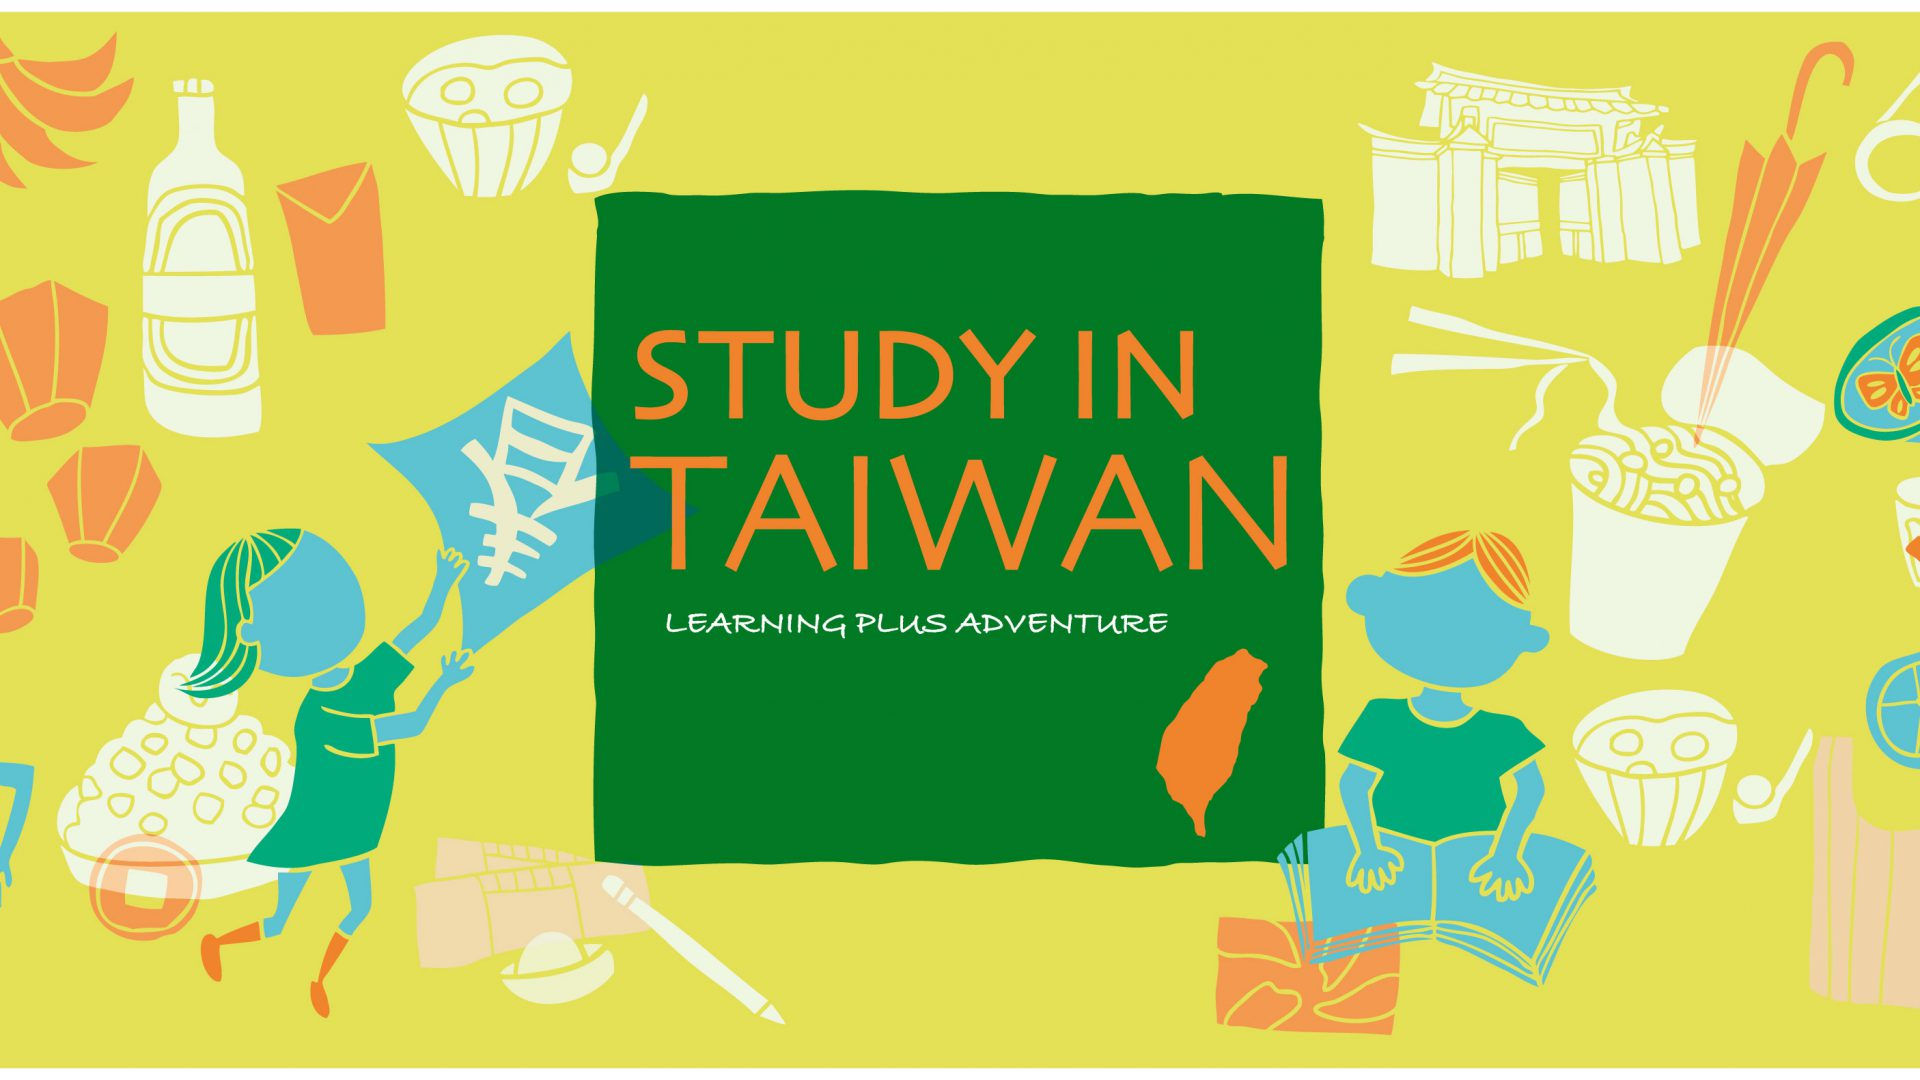 Taiwan's Education and Scholarships in Thailand 4.0